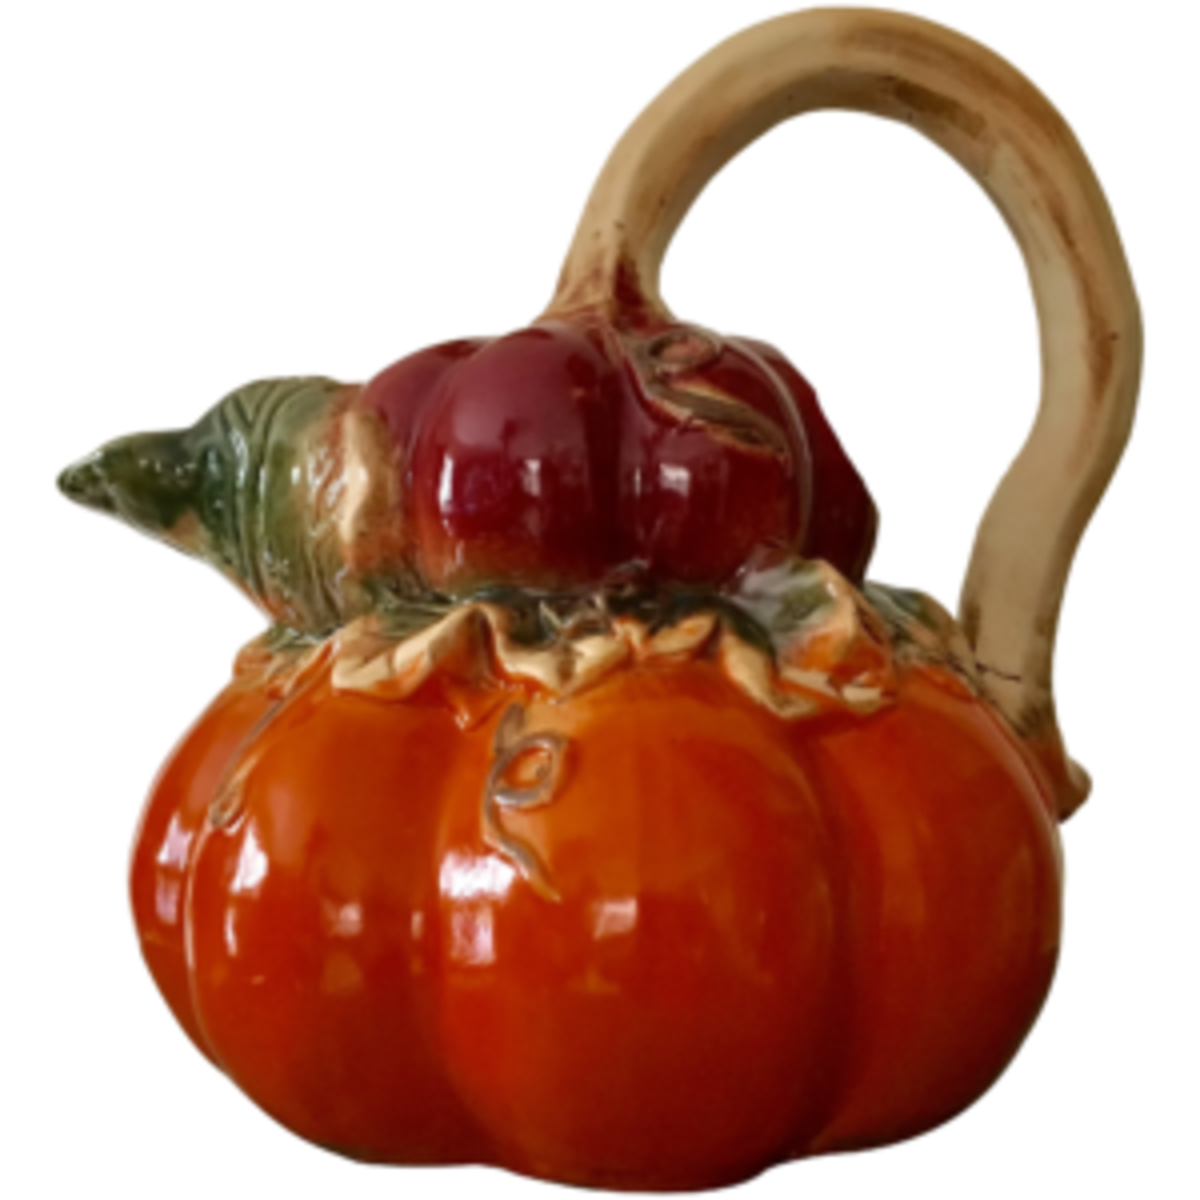 This ceramic pottery pumpkin pitcher makes for lovely decor for Thanksgiving; $95. Courtesy of Vintage Tea Cup: rubylane.com/shop/vintage-tea-cup